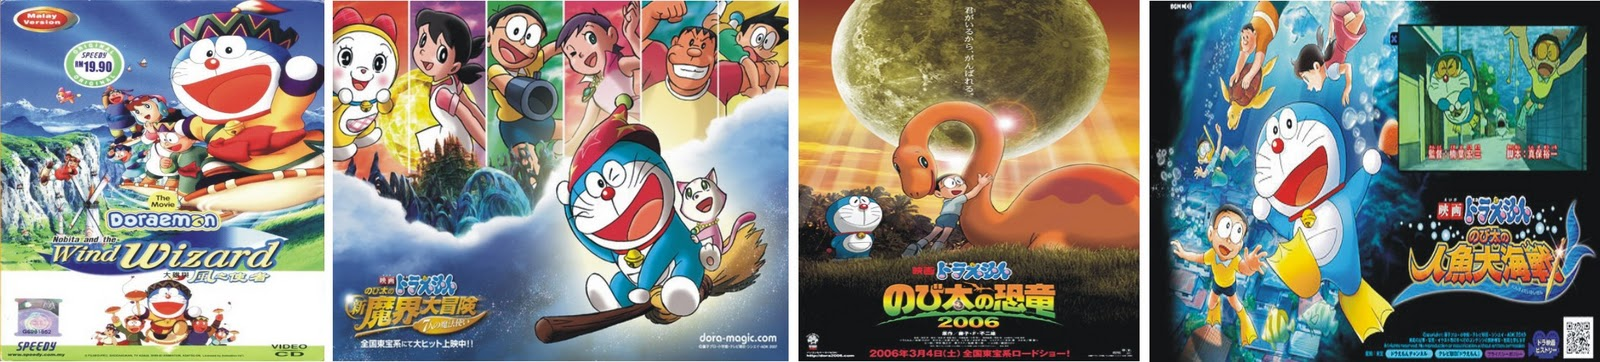 Doraemon Movie Download